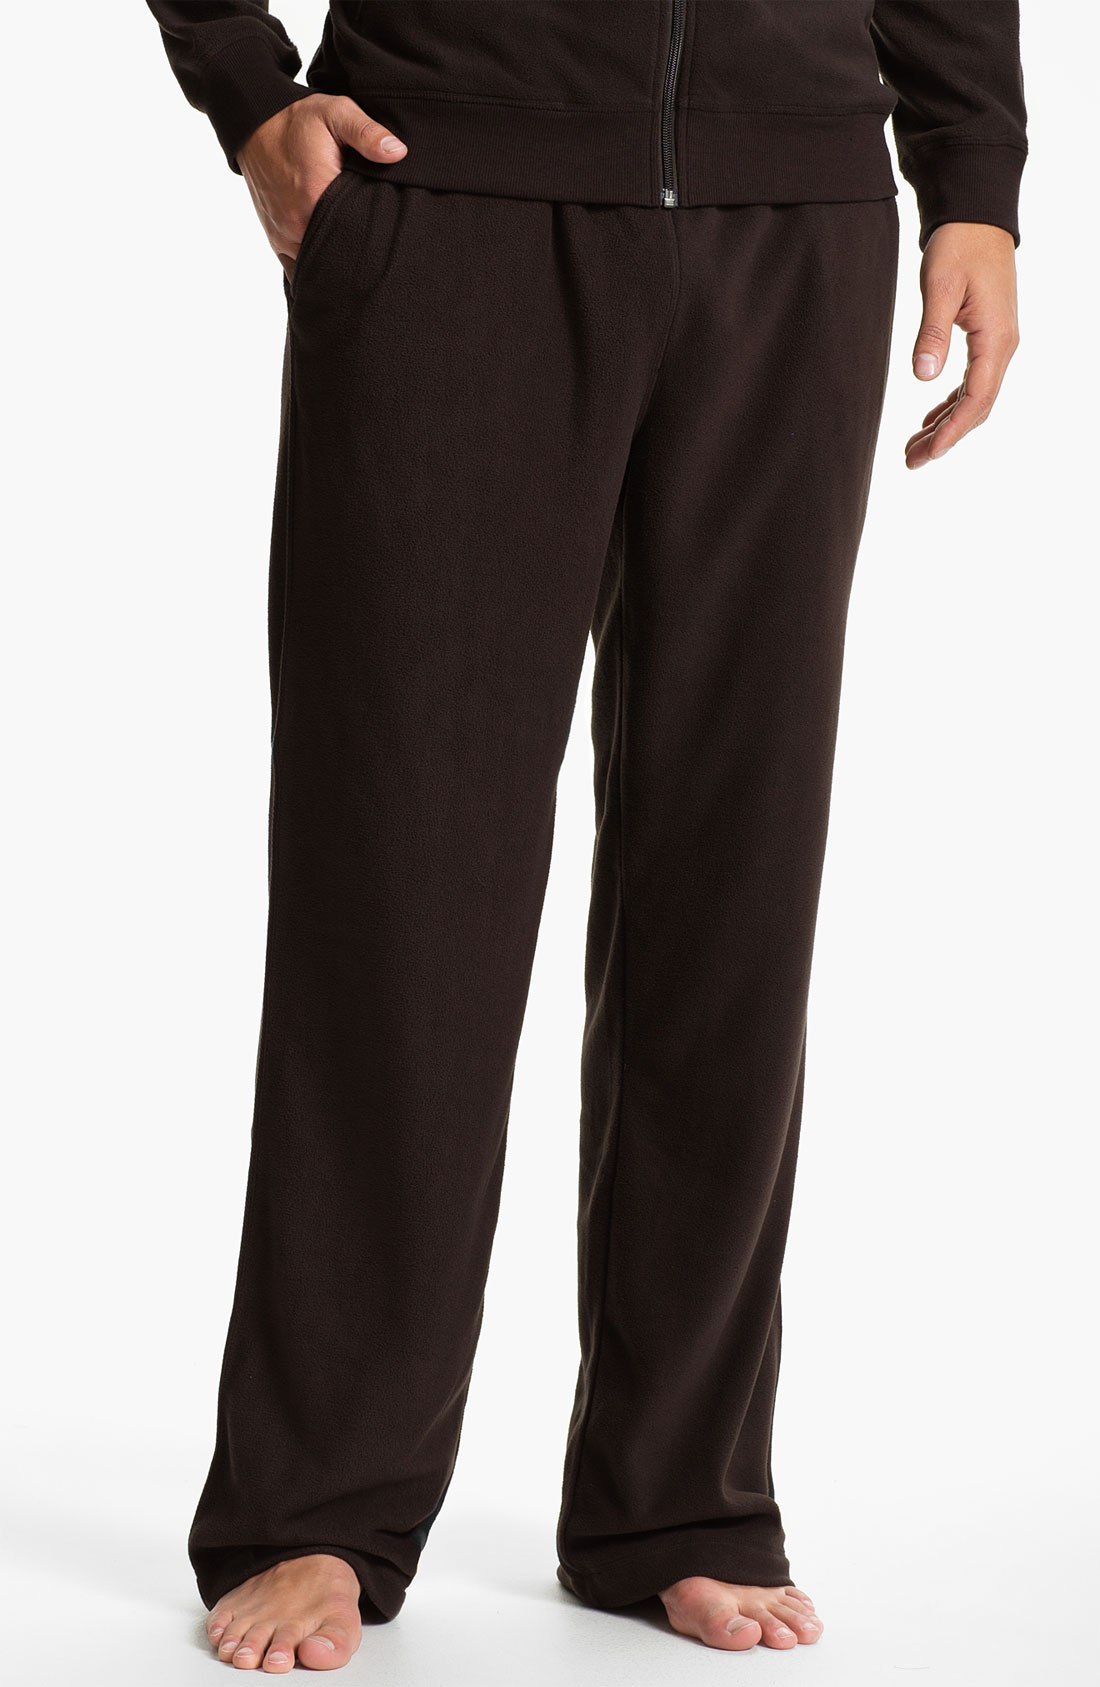 Daniel Buchler Fleece Lounge Pants In Brown For Men